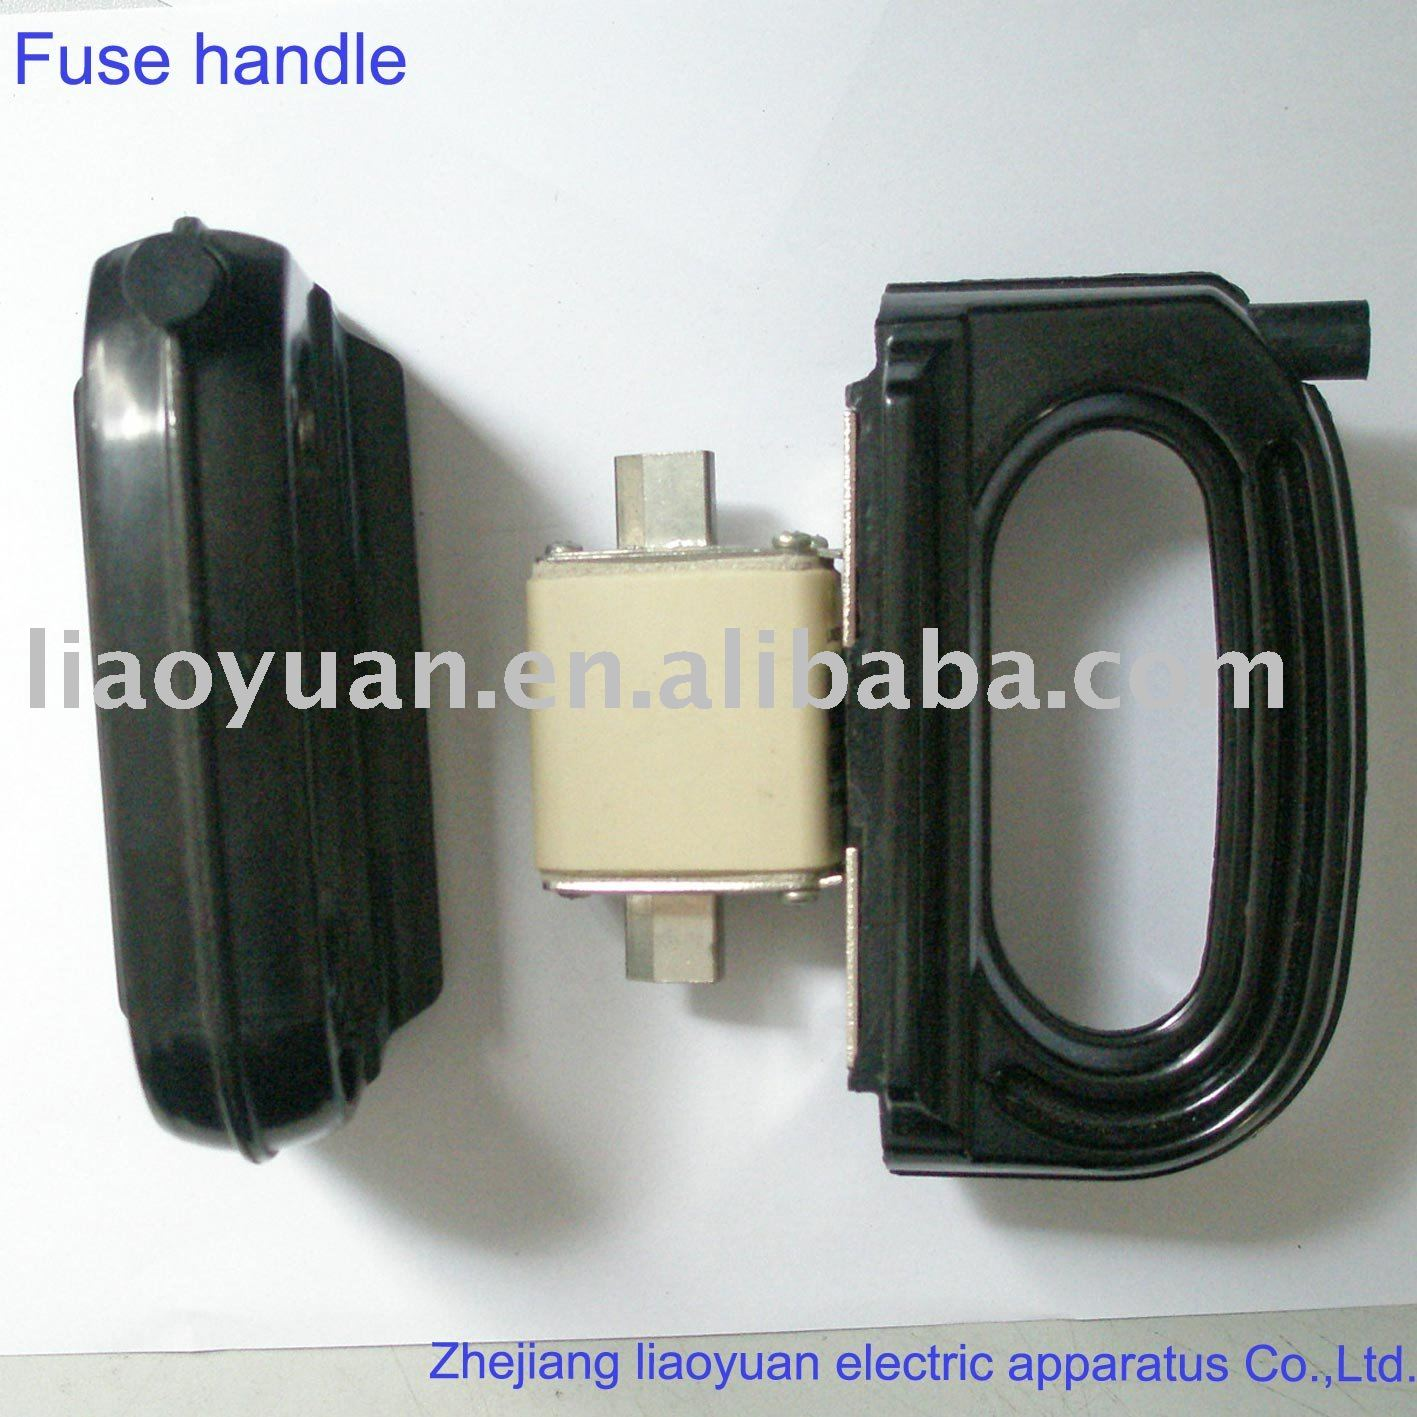 hight resolution of fuse puller used for nt nh rt series